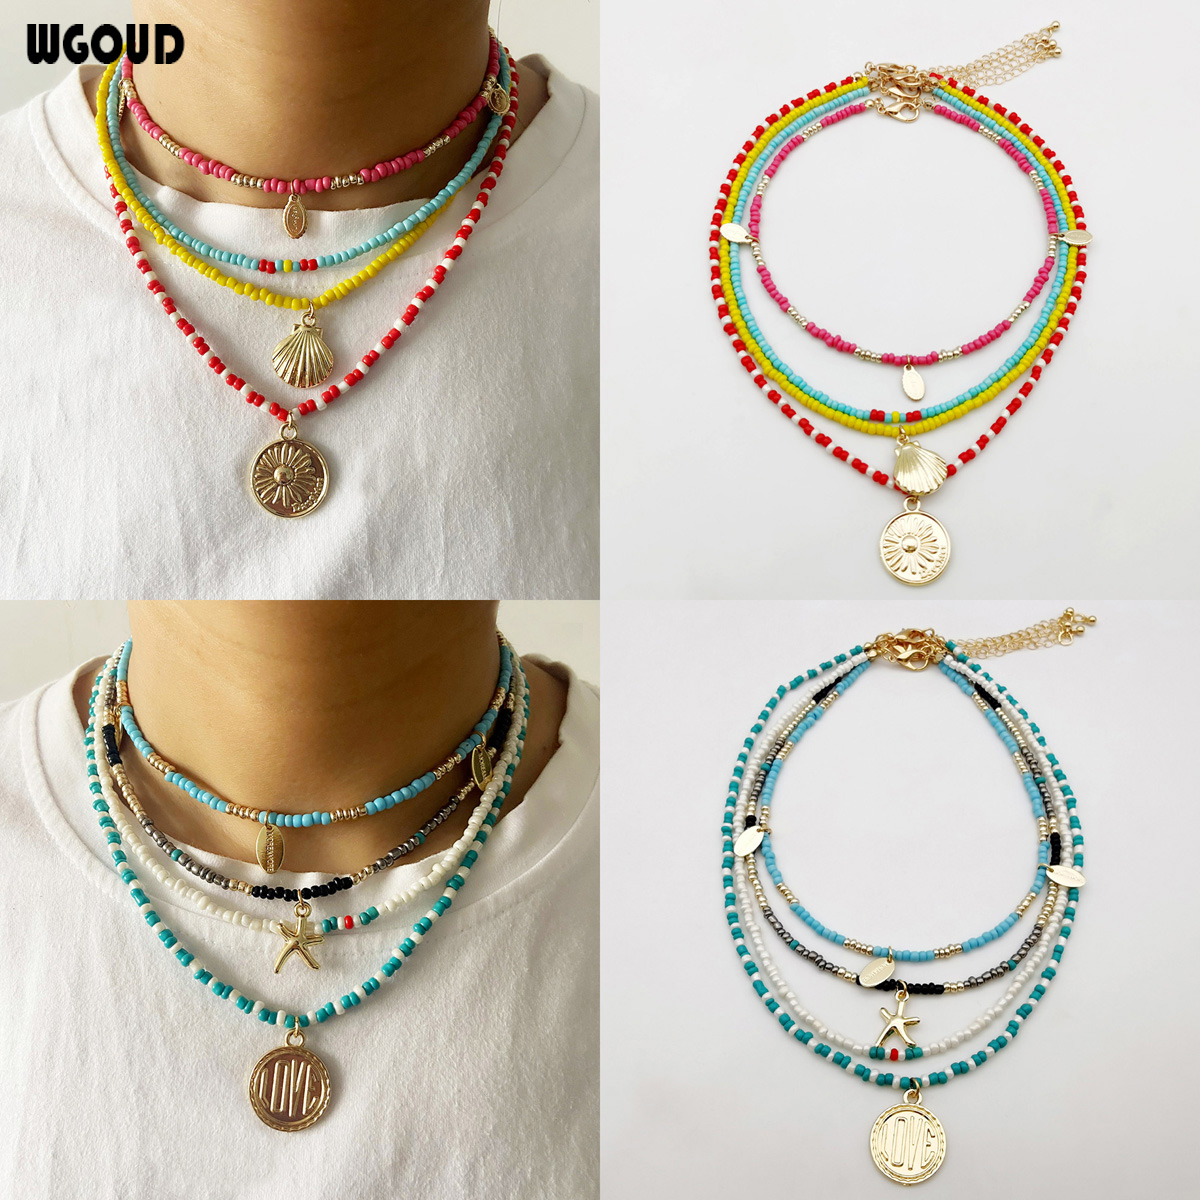 Handmade Multilayer Seed Bead Pendant Necklace Bohemian Fashion Chic Statement Collier Party Necklace Femme Women Dropshipping